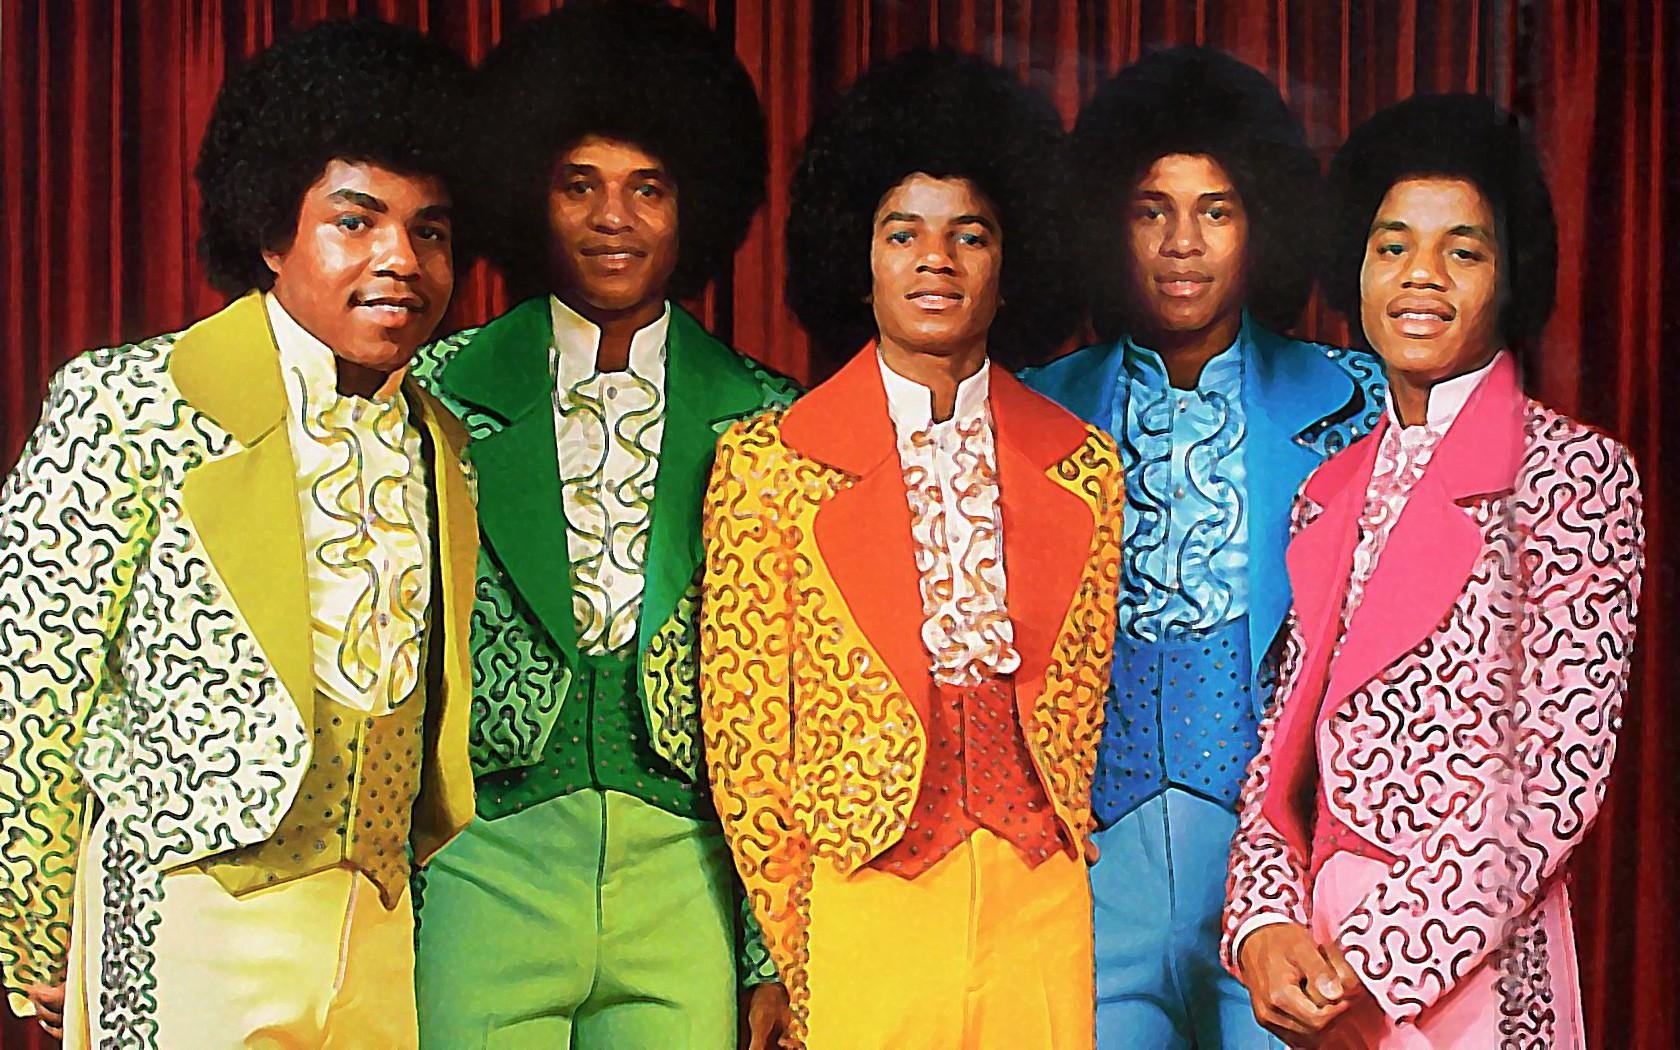 The jackson 5 wallpaper and background image 1680x1050 for Jackson galaxy band